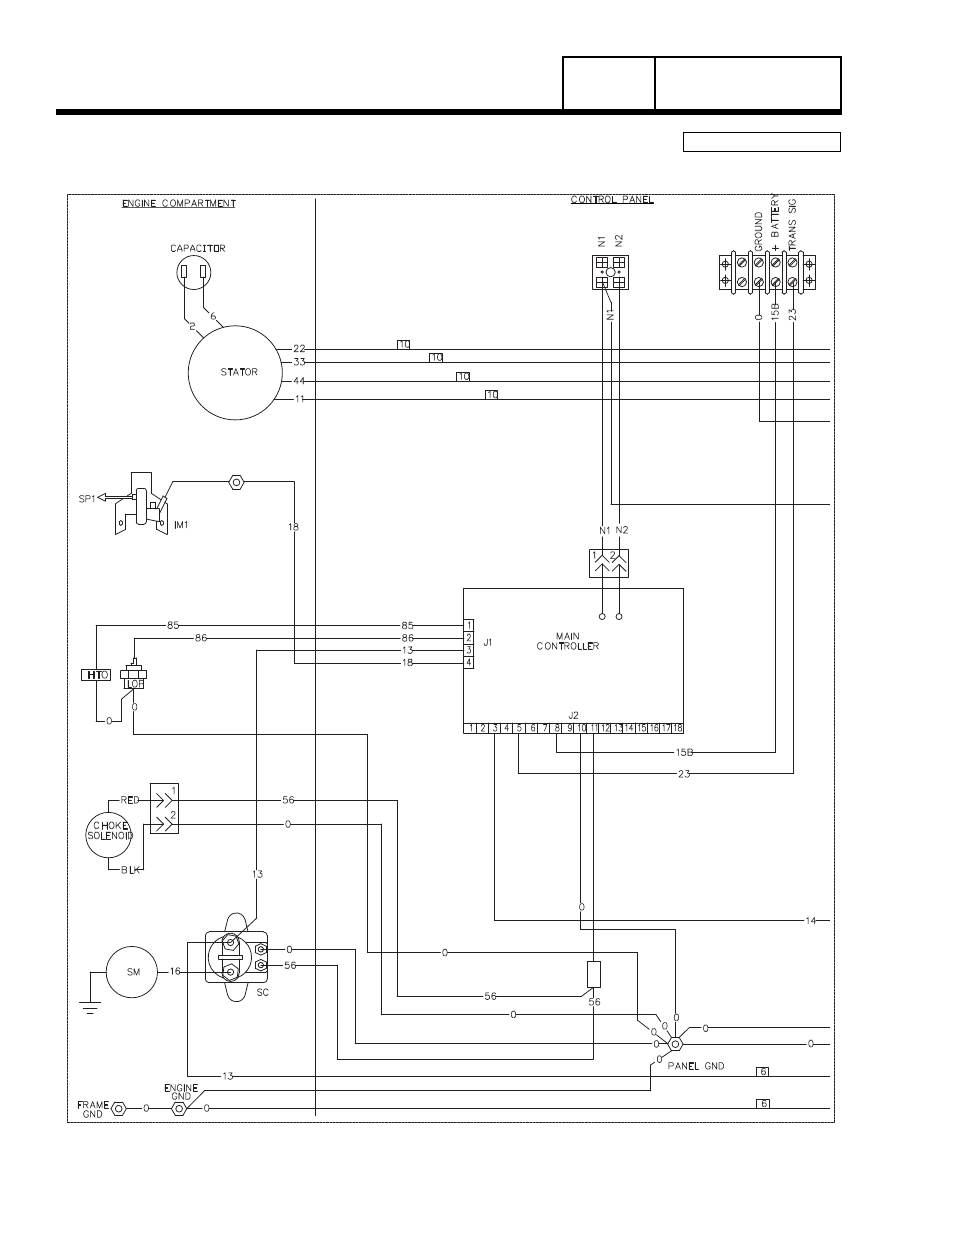 generac power systems 8 kw lp page166?resize\\\\\\\\\\\\\\\=665%2C861 generac wiring diagram & generac gts transfer switch wiring generac gts transfer switch wiring diagram at gsmx.co